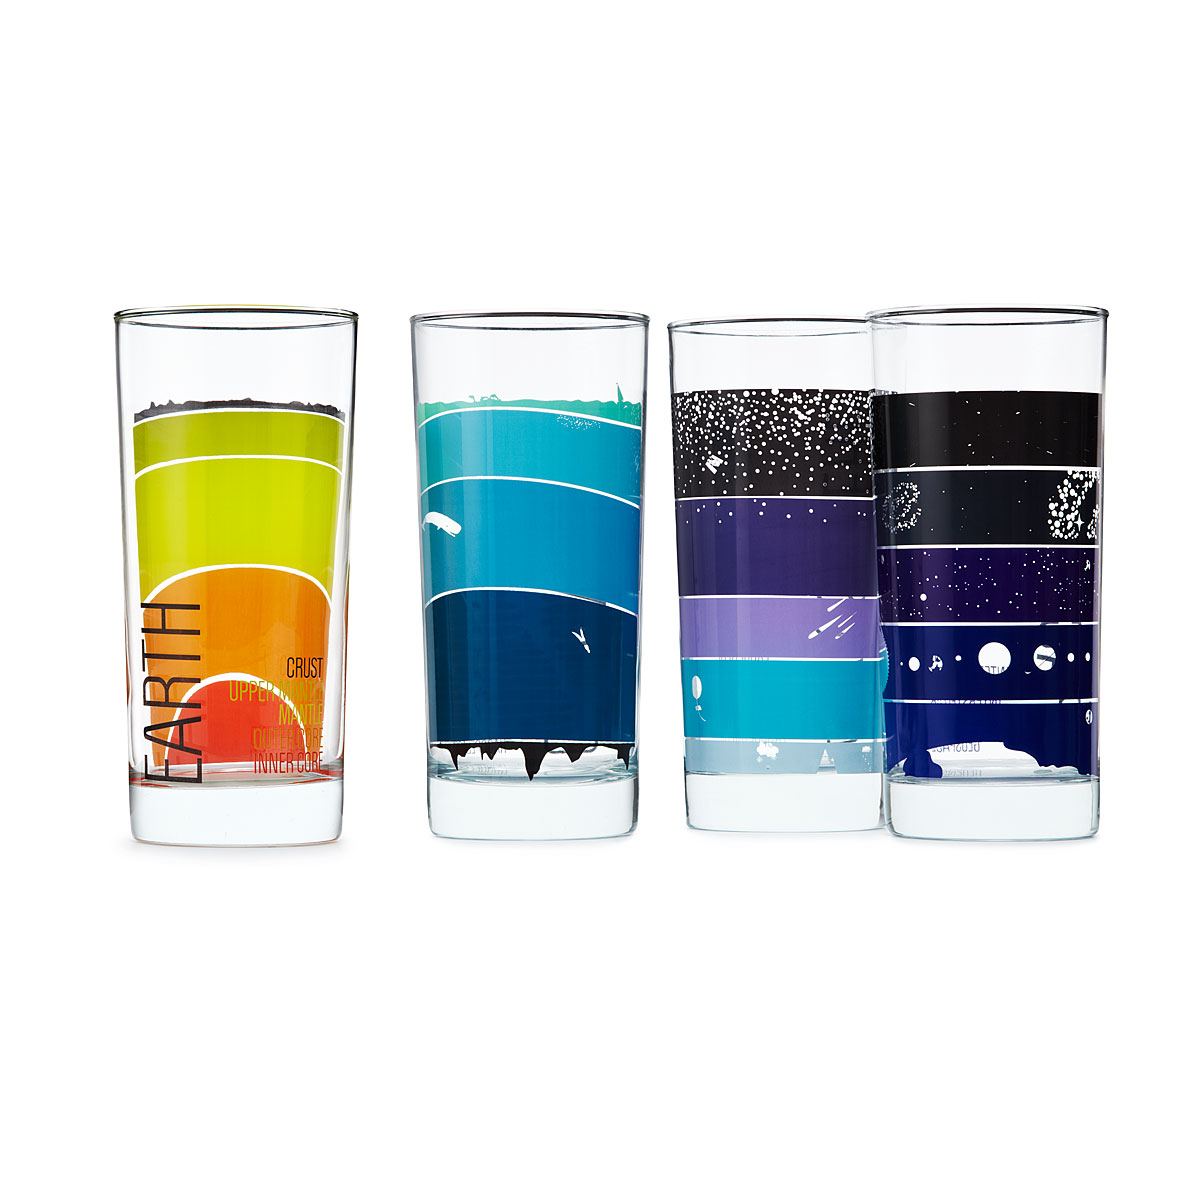 Geek out with these earth science drinking glasses